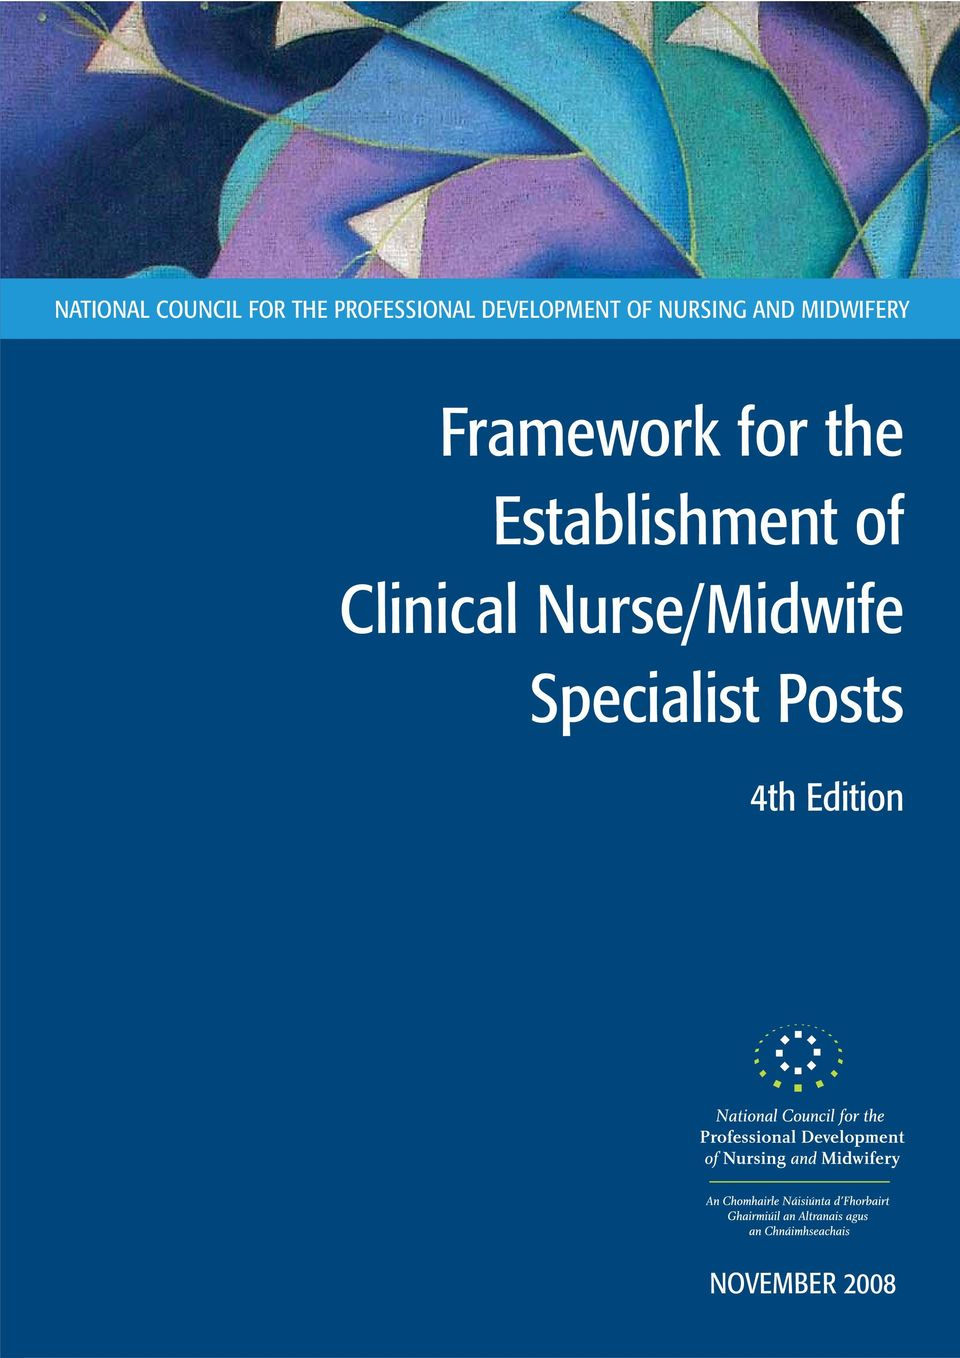 Framework for the Establishment of Clinical